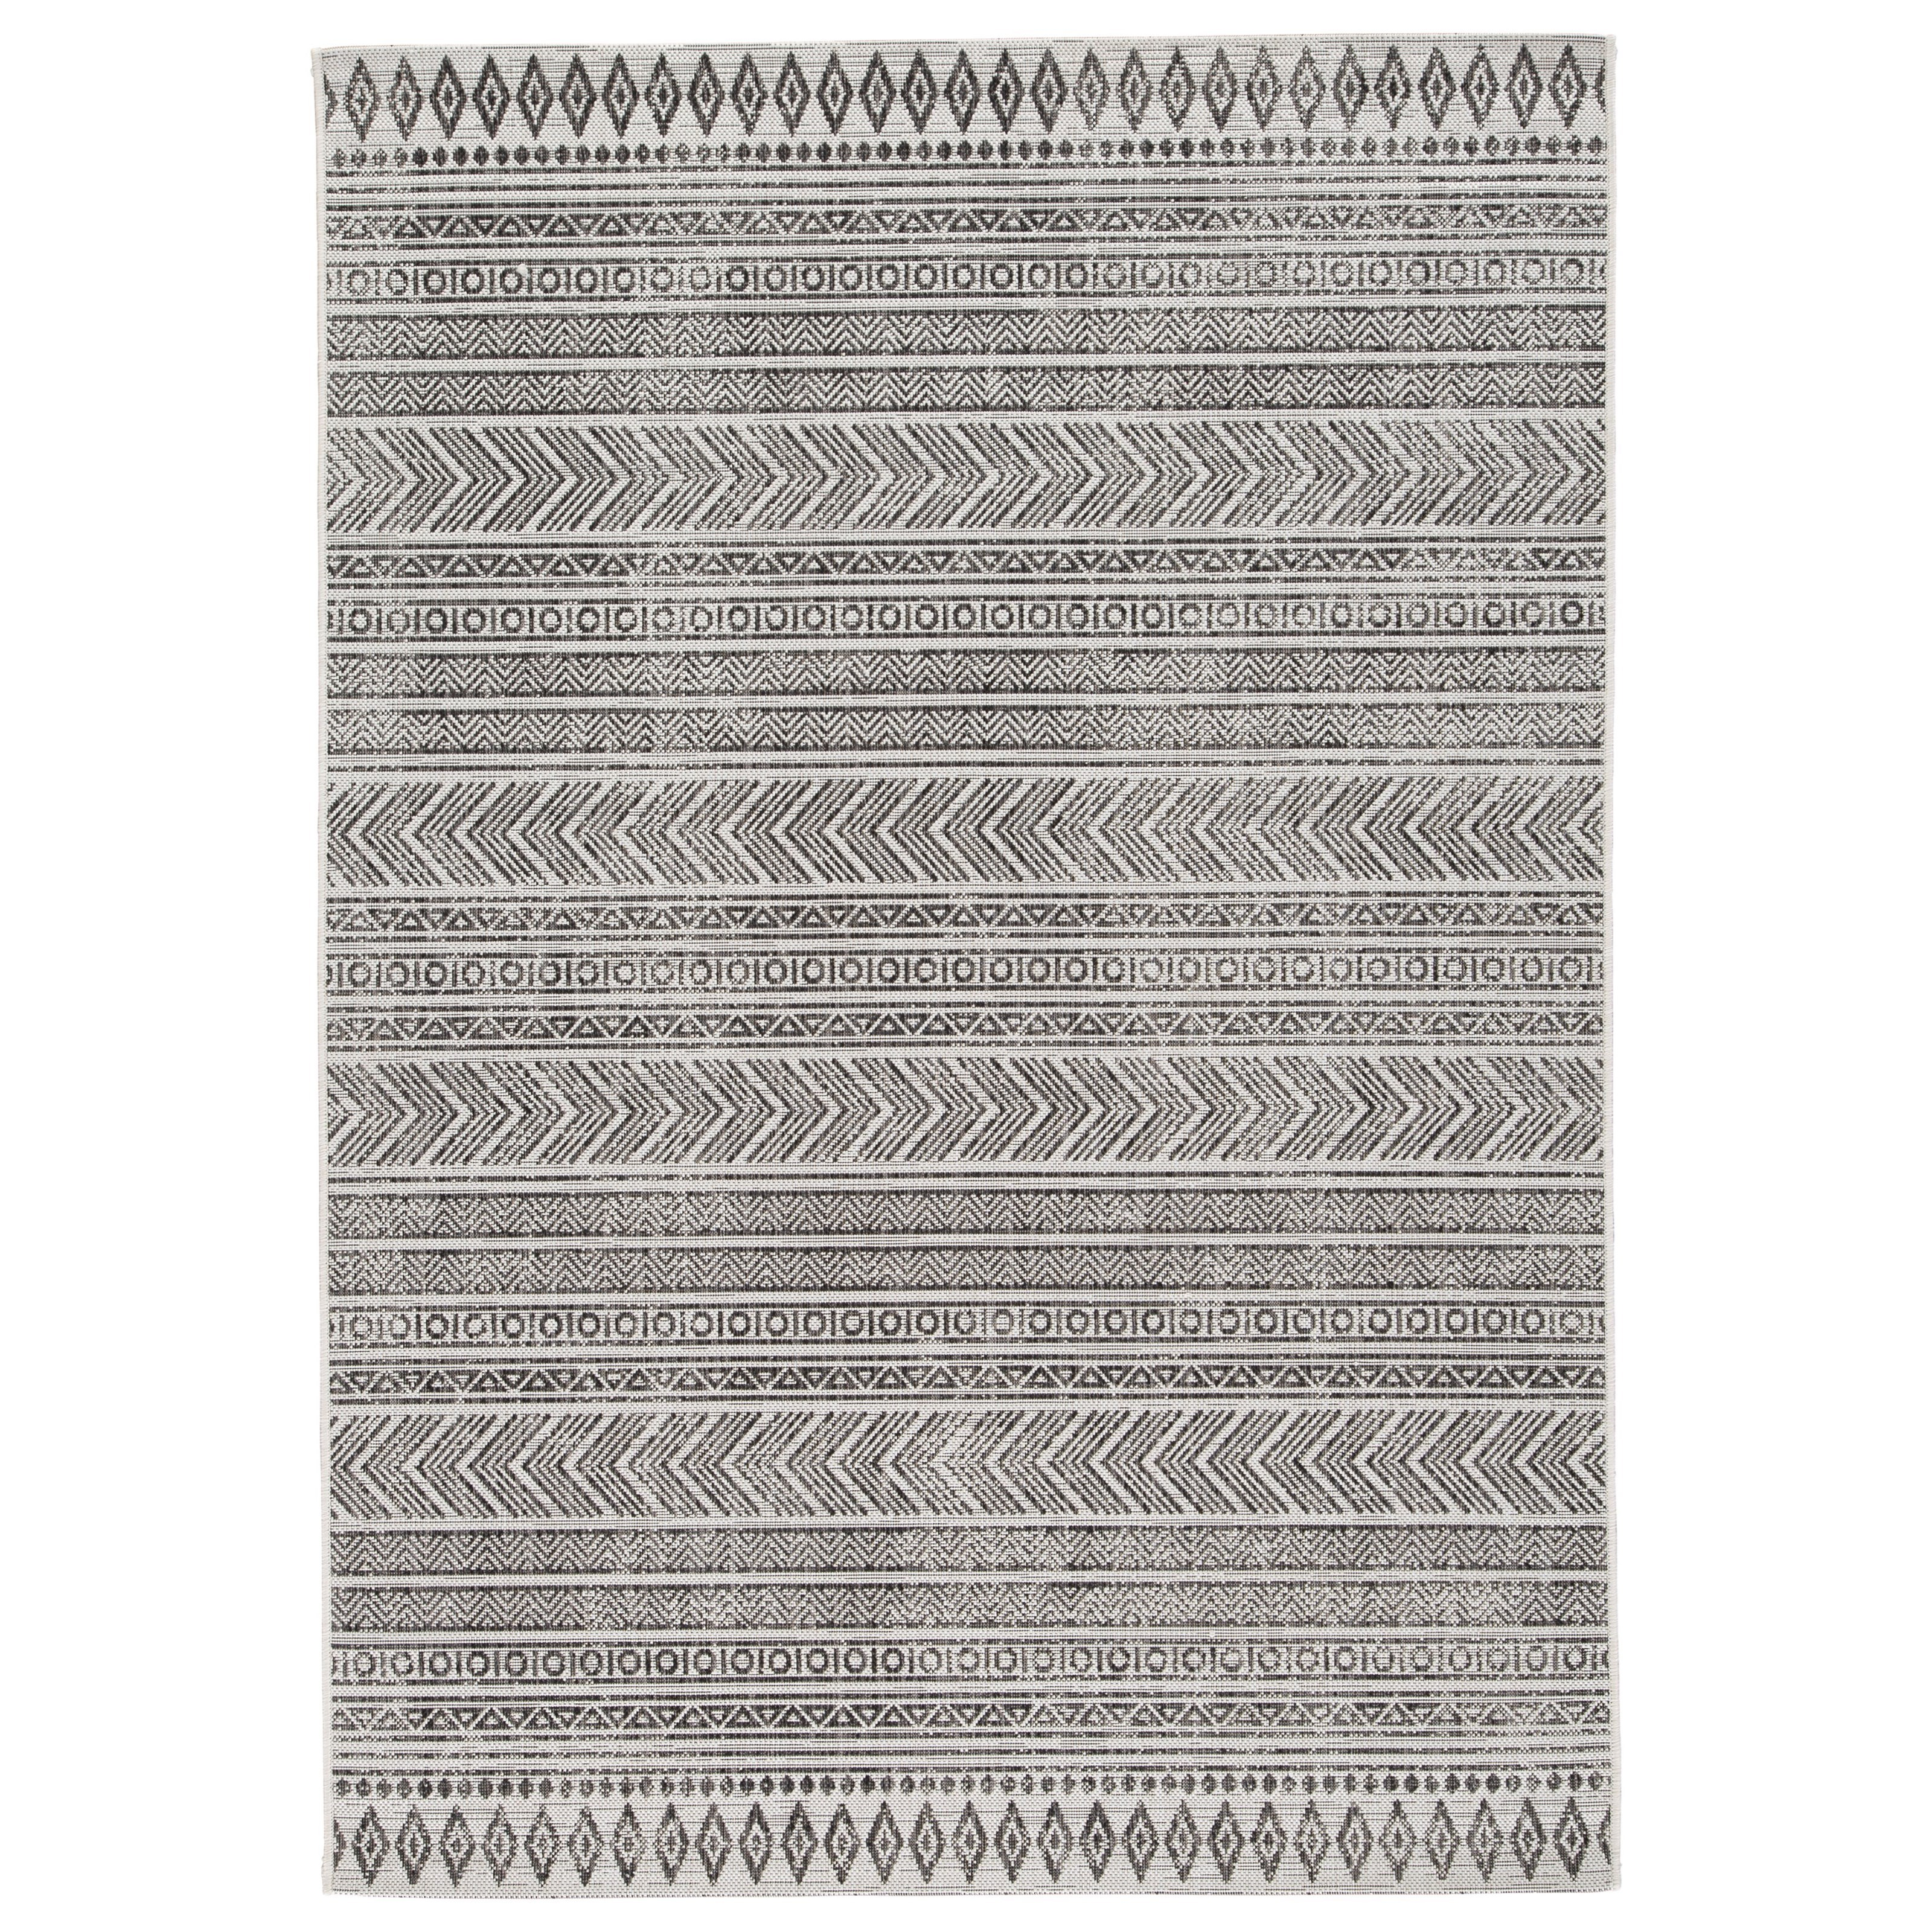 Casual Area Rugs Brinoy Black/White Indoor/Outdoor Large Rug by Signature Design by Ashley at Furniture Barn